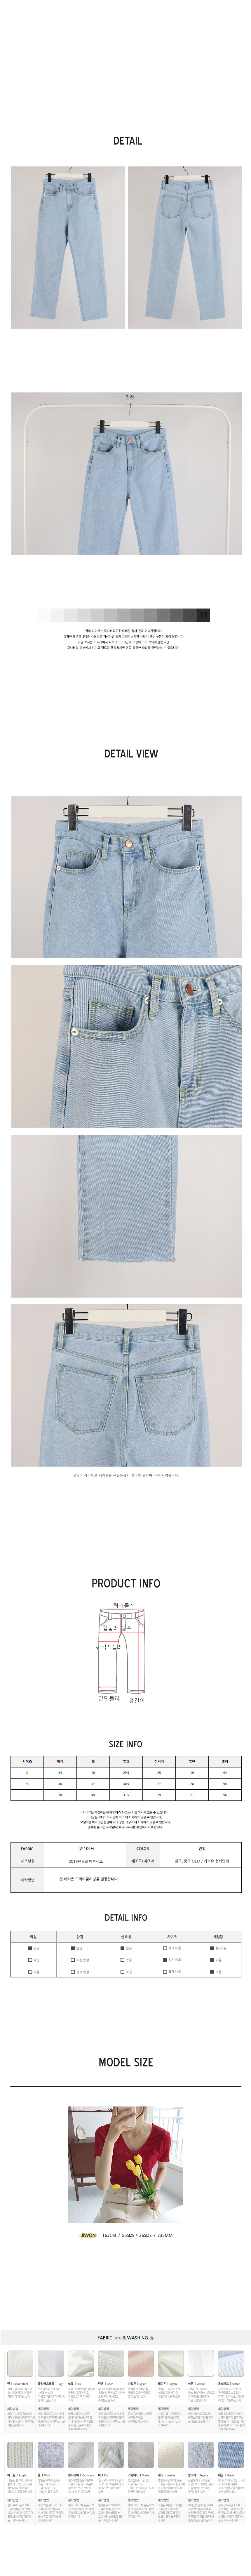 Fence slim jeans